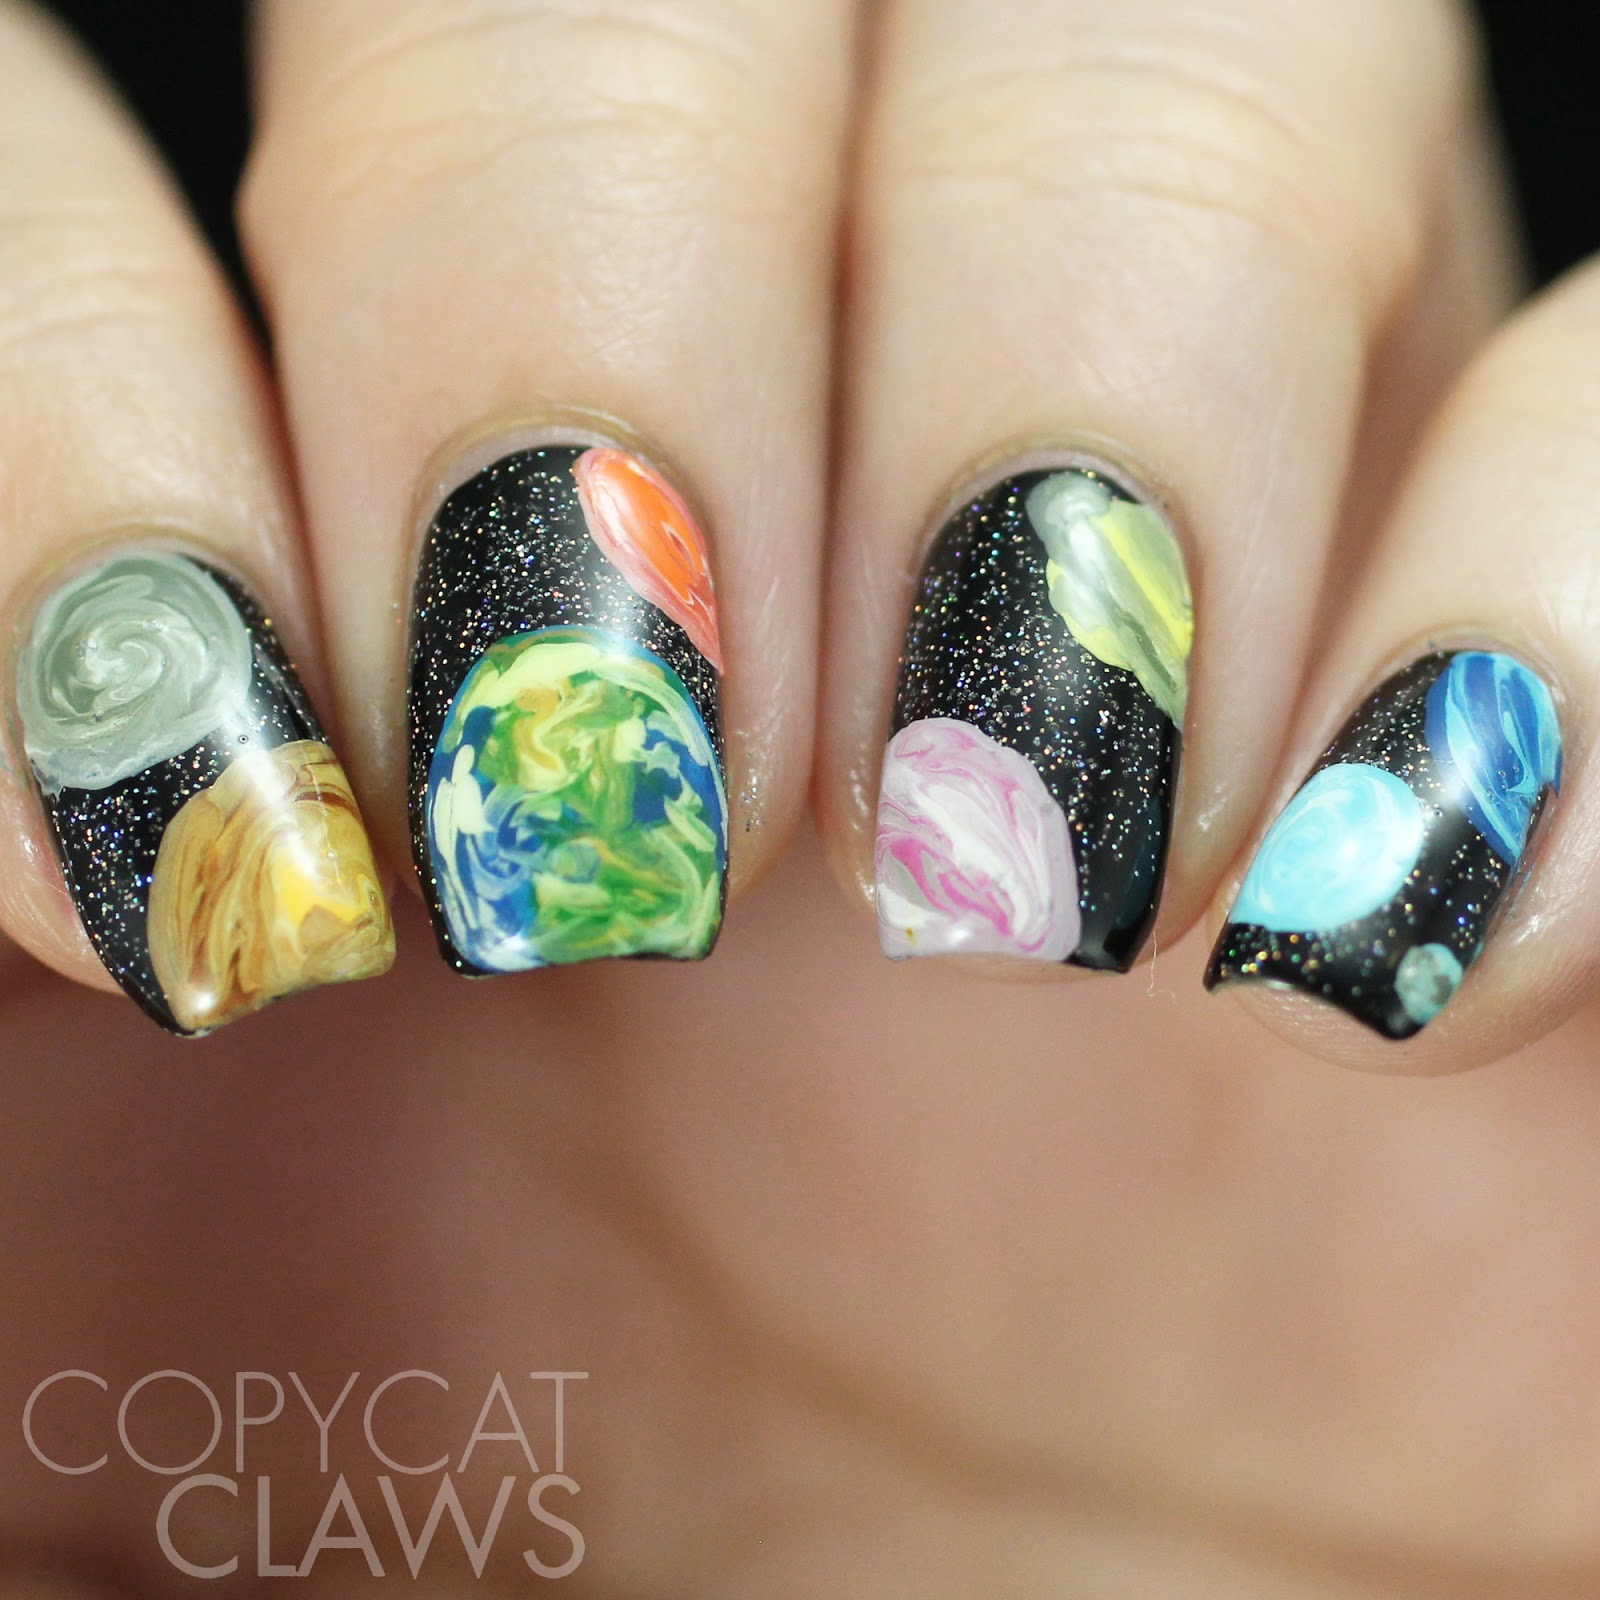 Copycat Claws: 26 Great Nail Art Ideas - Things That Are Round